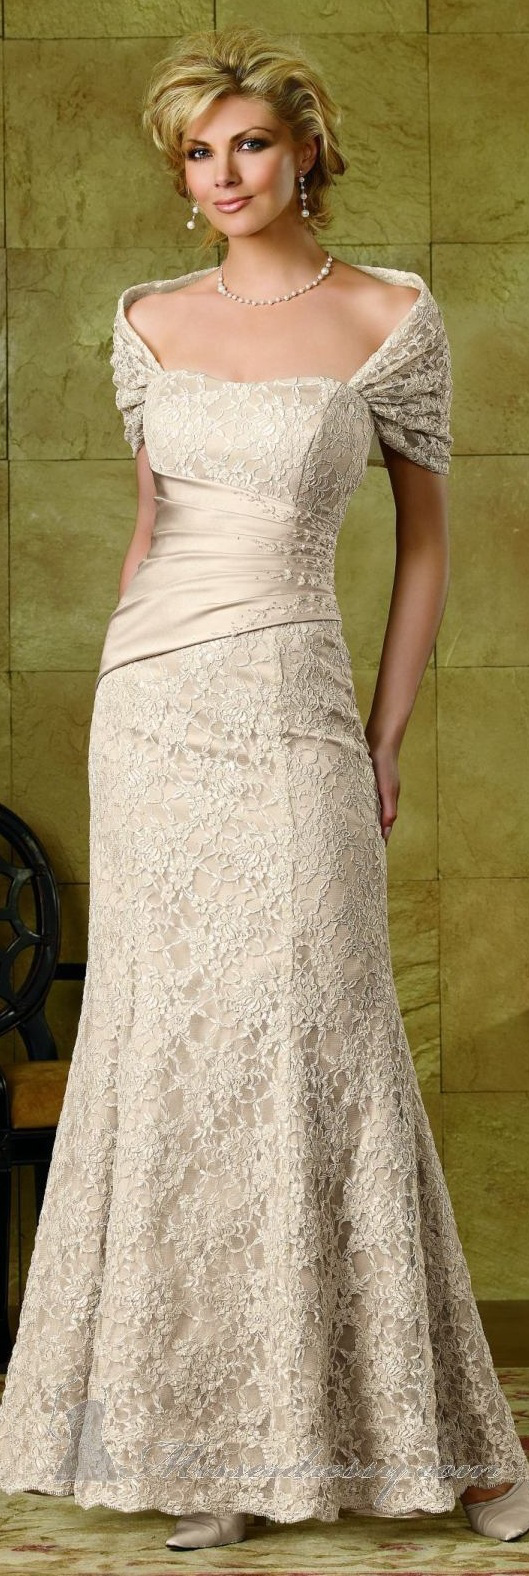 Mature bride wedding dresses  Designer Feature Alita Graham Wedding Dresses  Wedding Dress